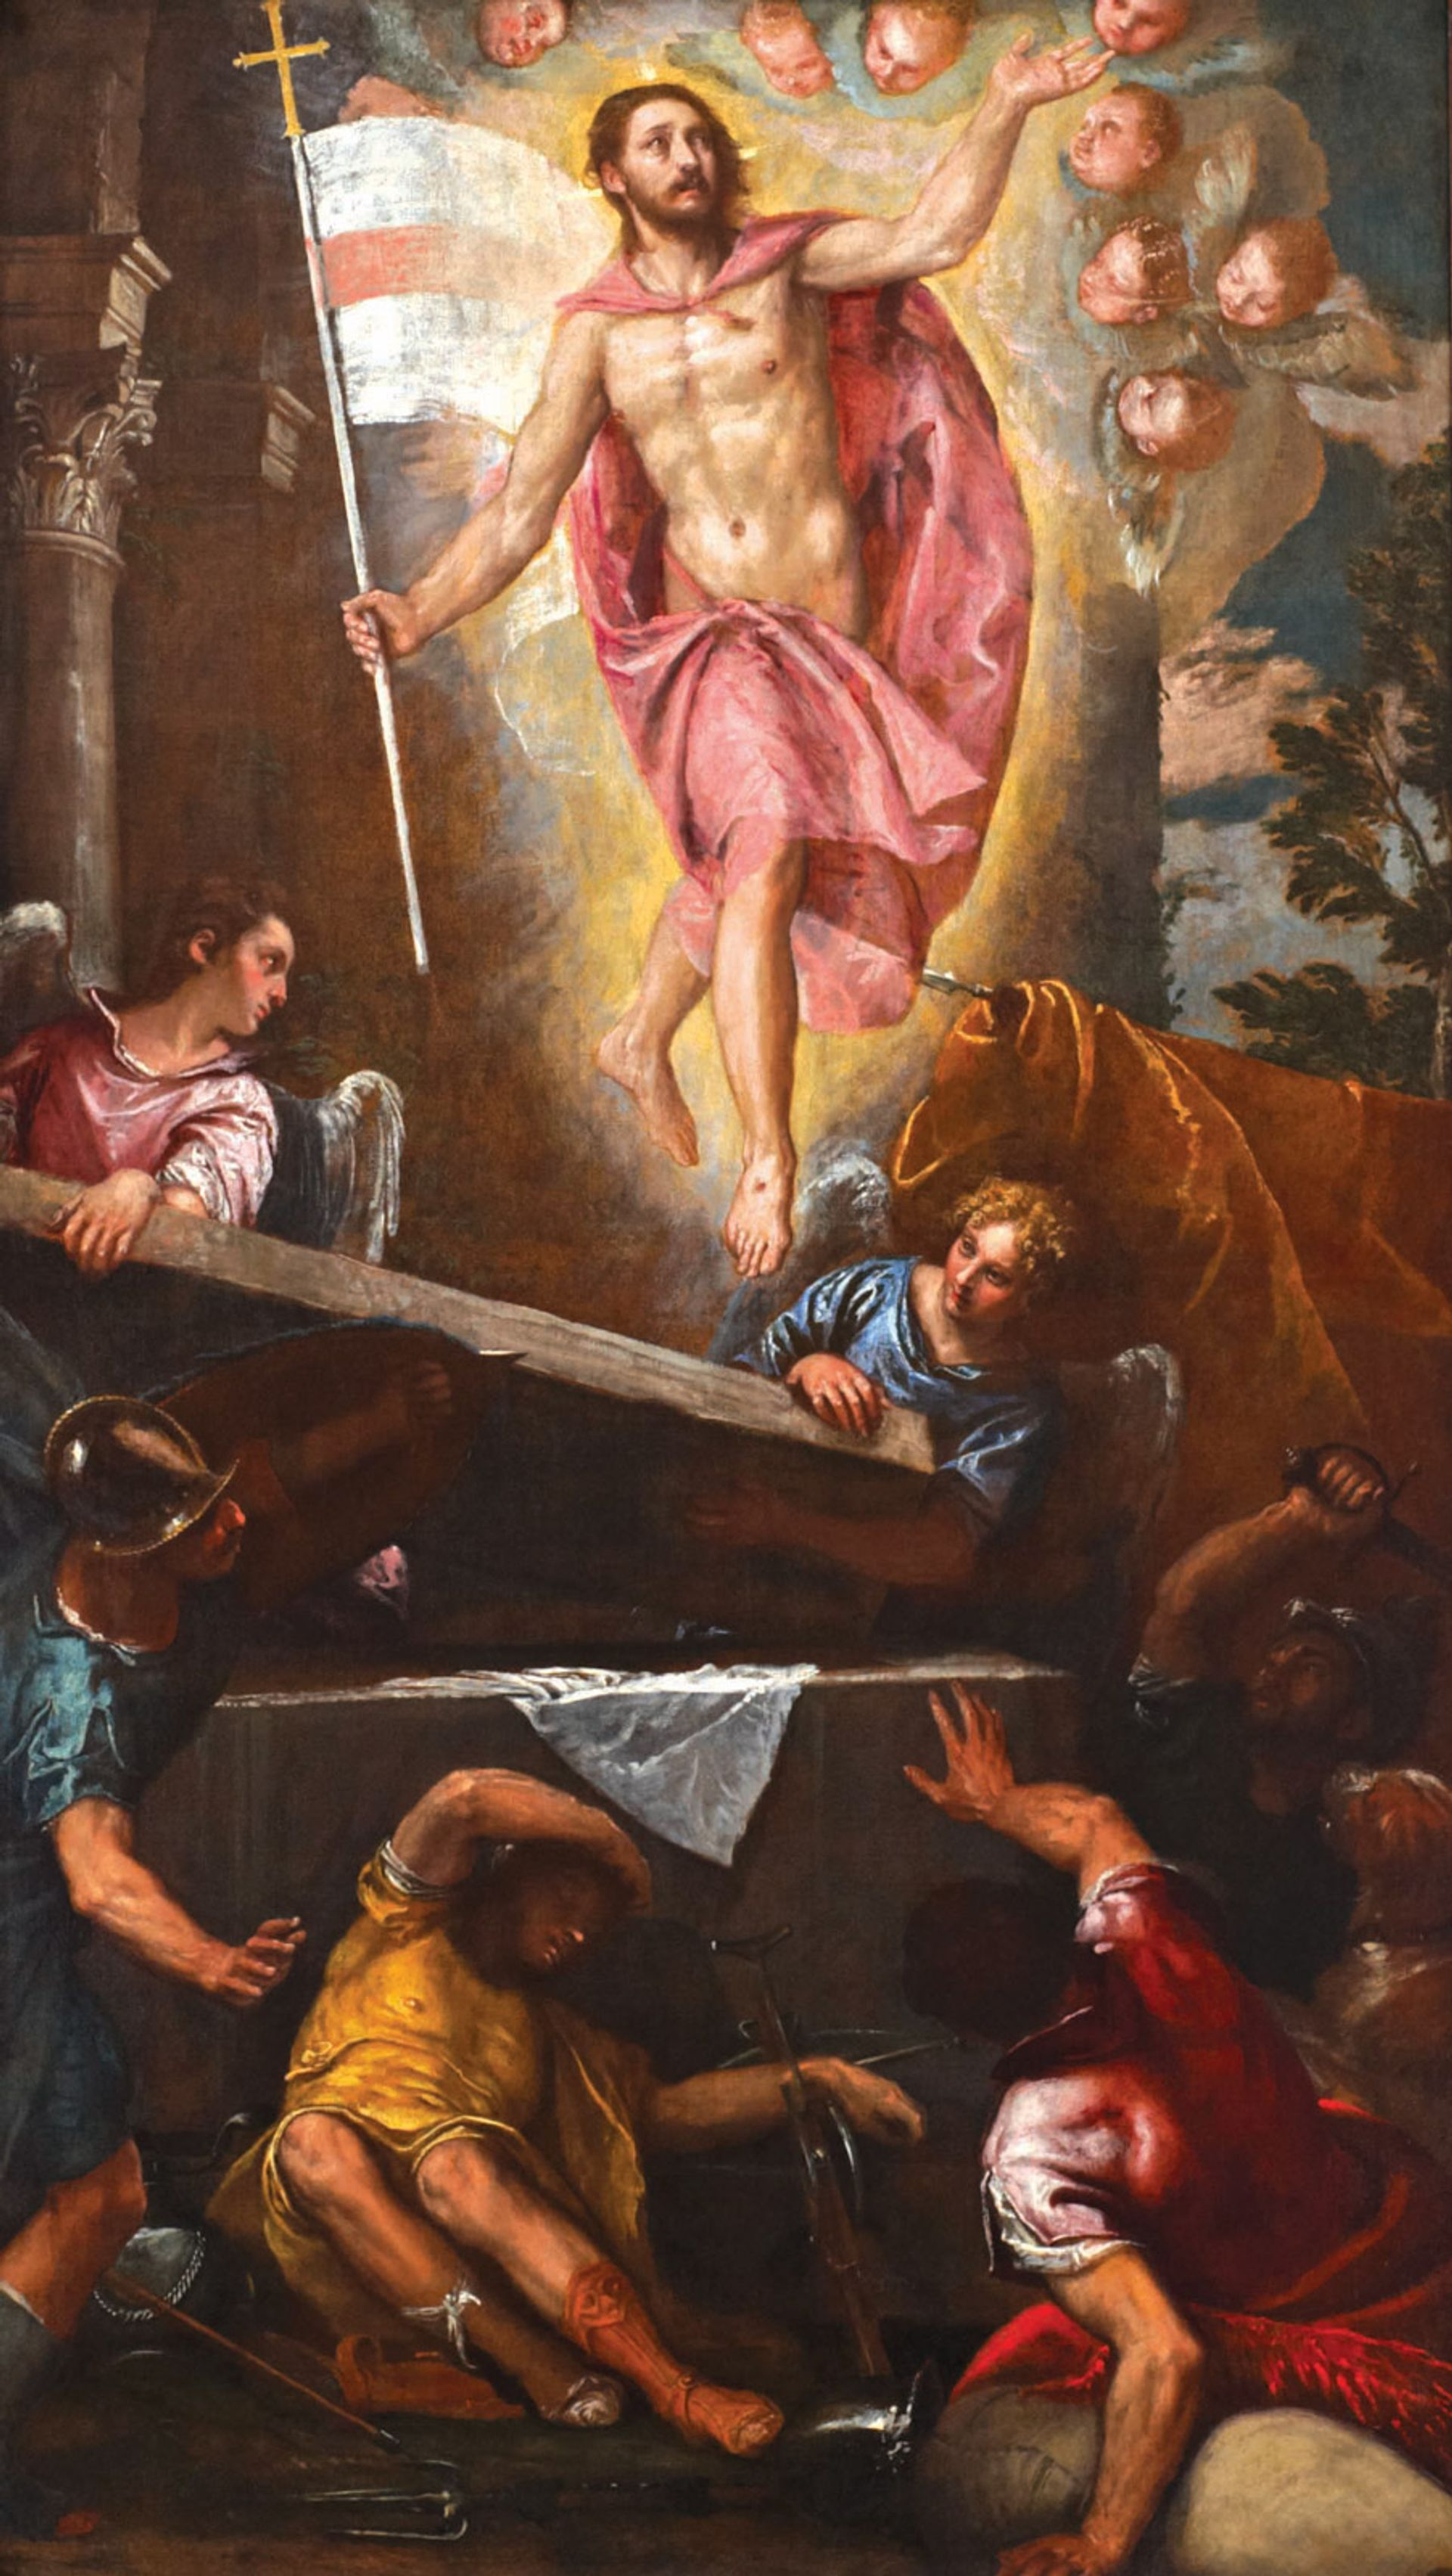 Miracle cure: Veronese's Resurrection © CW+